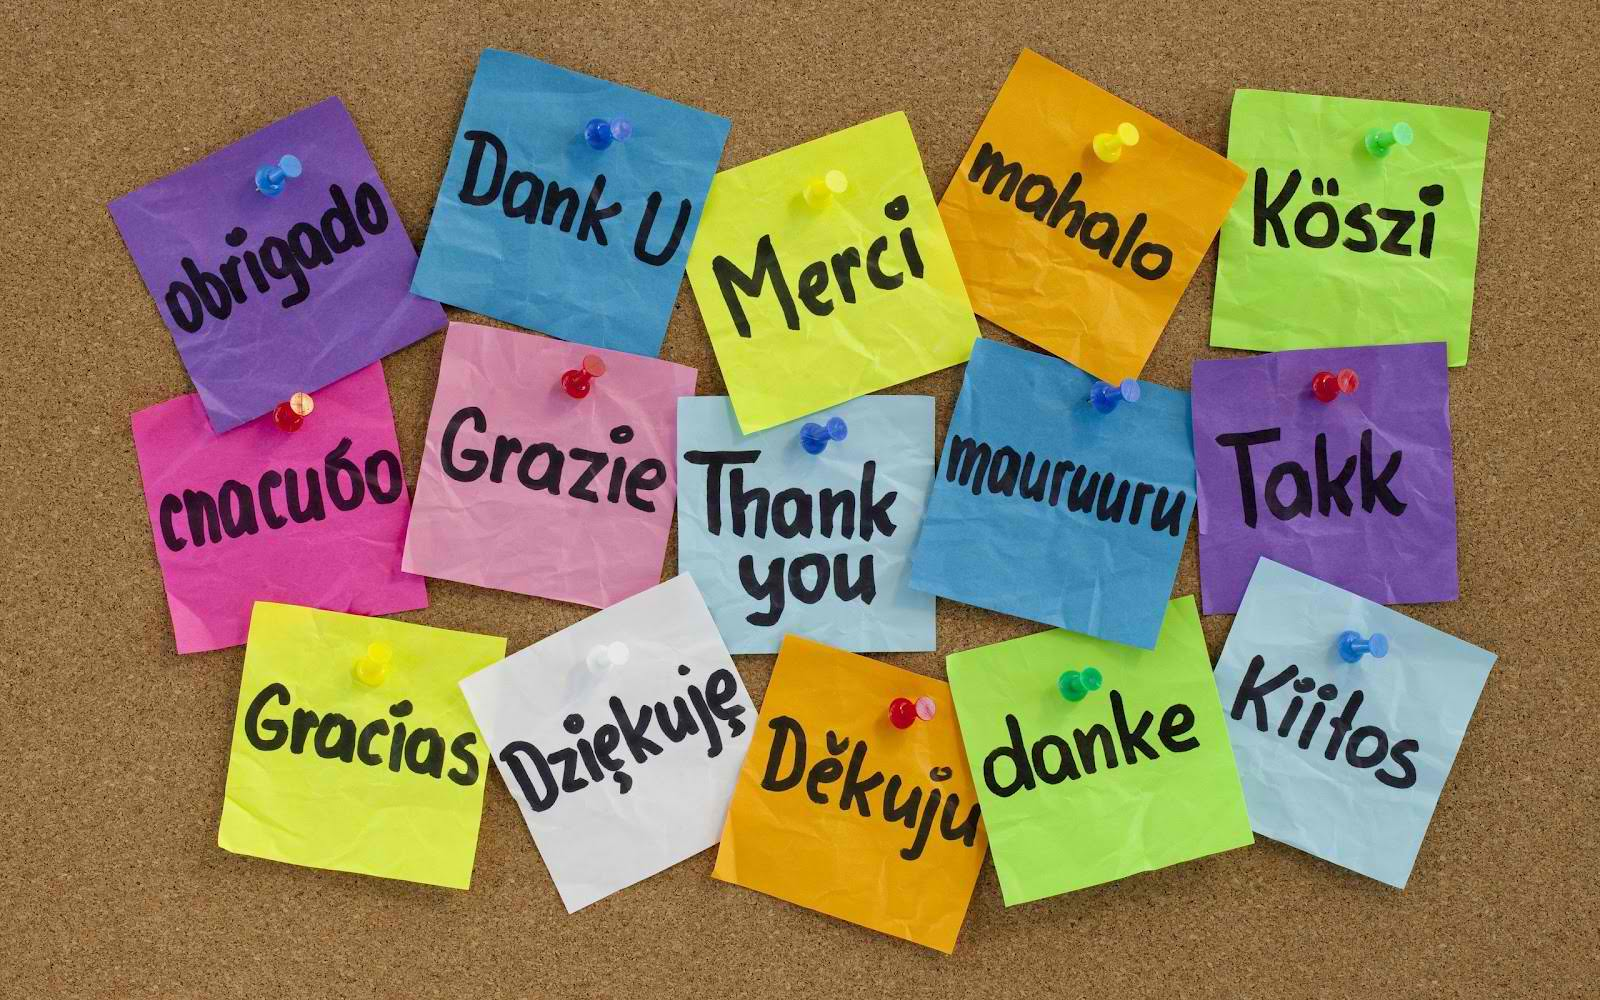 post it notes with thank you written in different languages